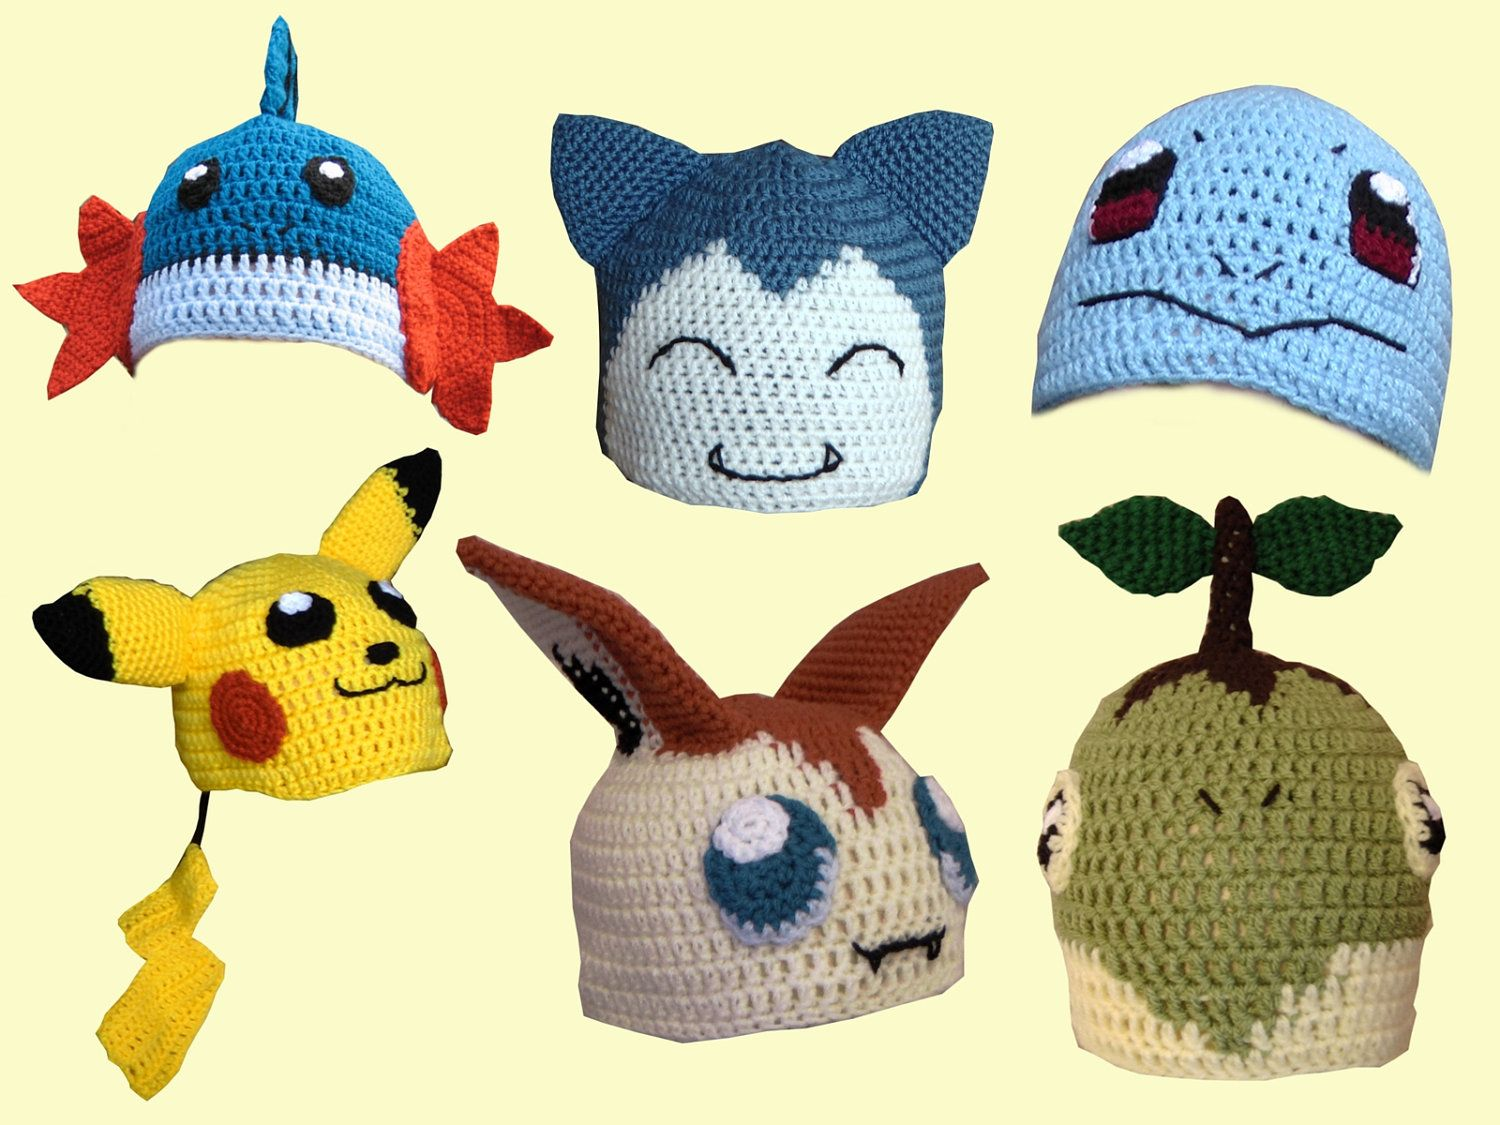 Crochet pokemon hats. Yes, please. @AliAndLilly We could have these ...